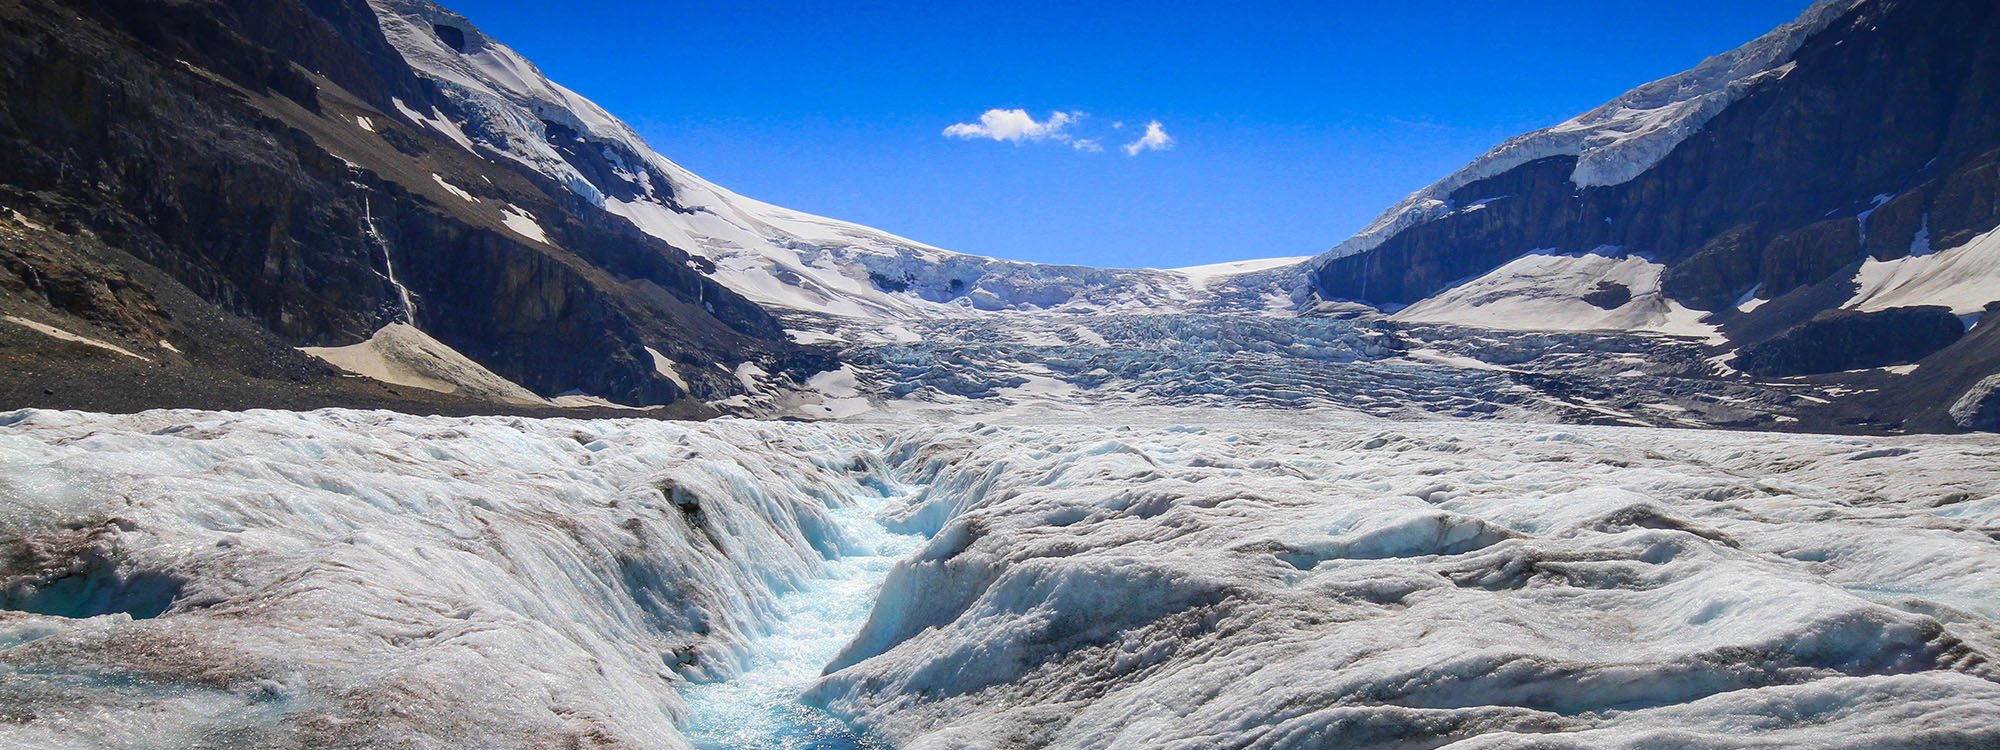 NSF funds Appalachian research of 'Changing Glacier Dynamics at Athabasca Glacier'